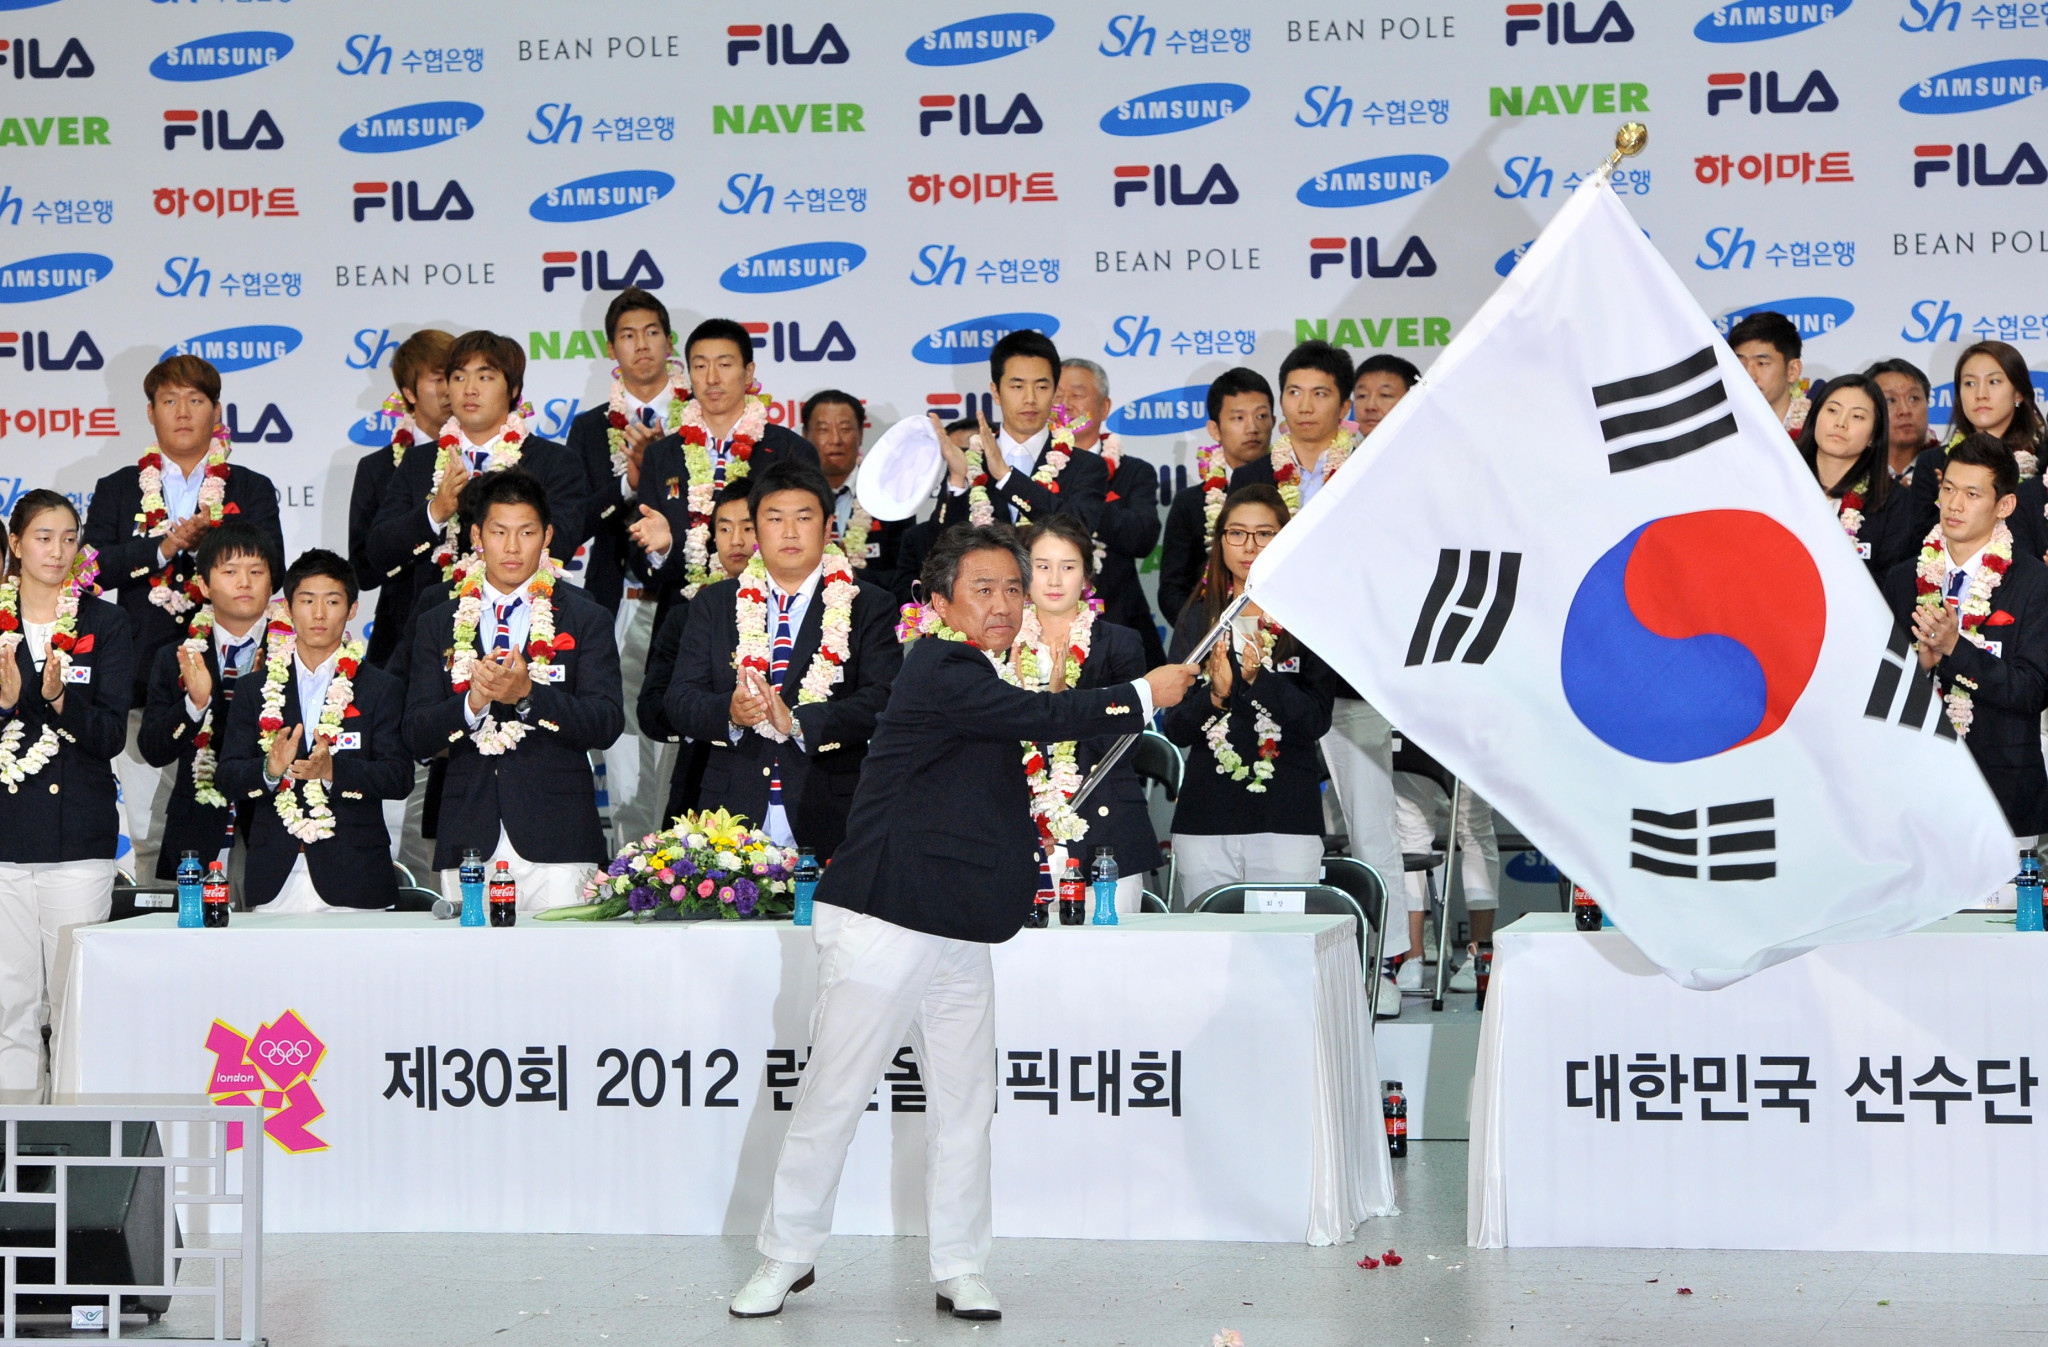 Lee Kee-heung was the Chef de Mission for South Korea at the 2012 London Olympics ©Getty Images